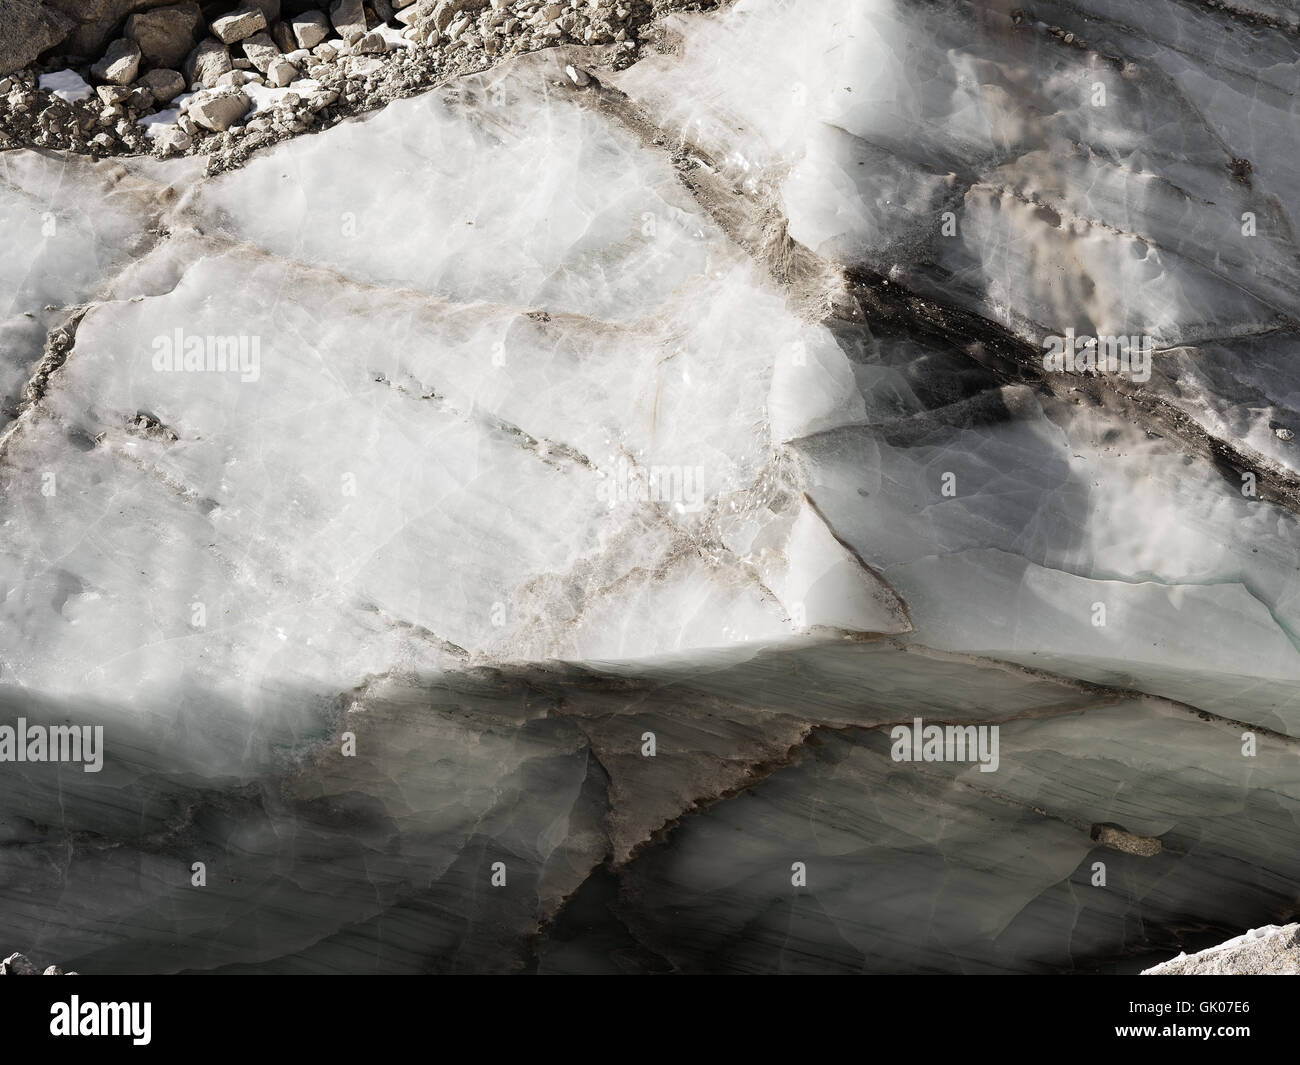 Glacier on the Everest Base Camp trail - Stock Image